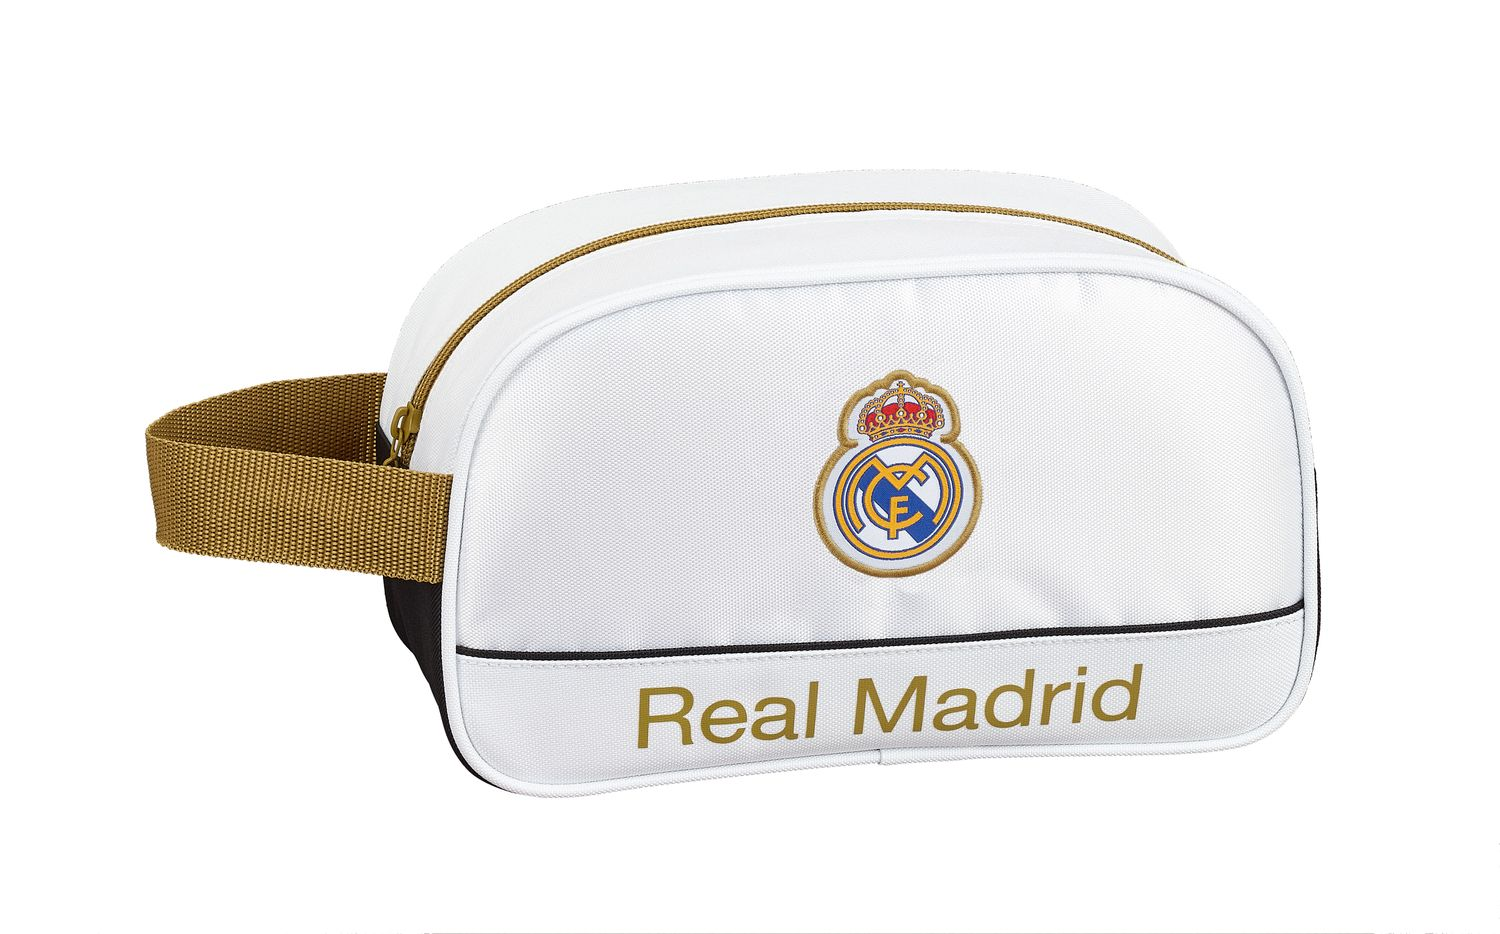 REAL MADRID 1st KIT 2020 Toiletry Travel Bag 26cm – image 1